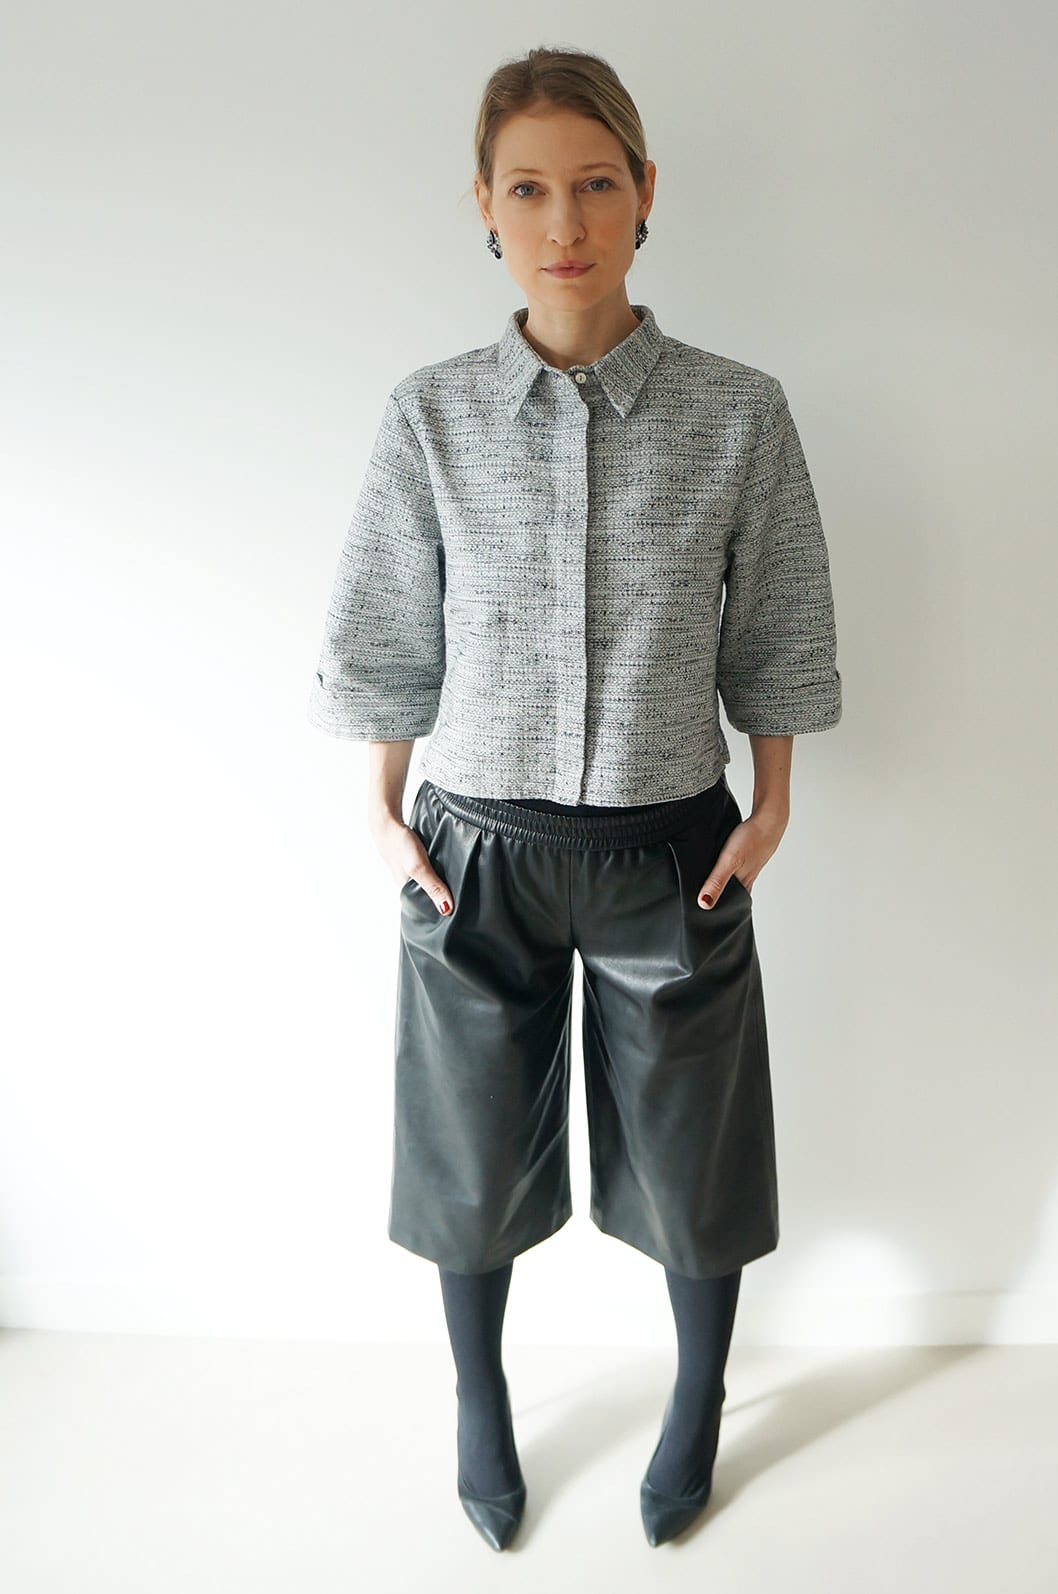 Carin Wester Grey Jacket and faux leather culottes